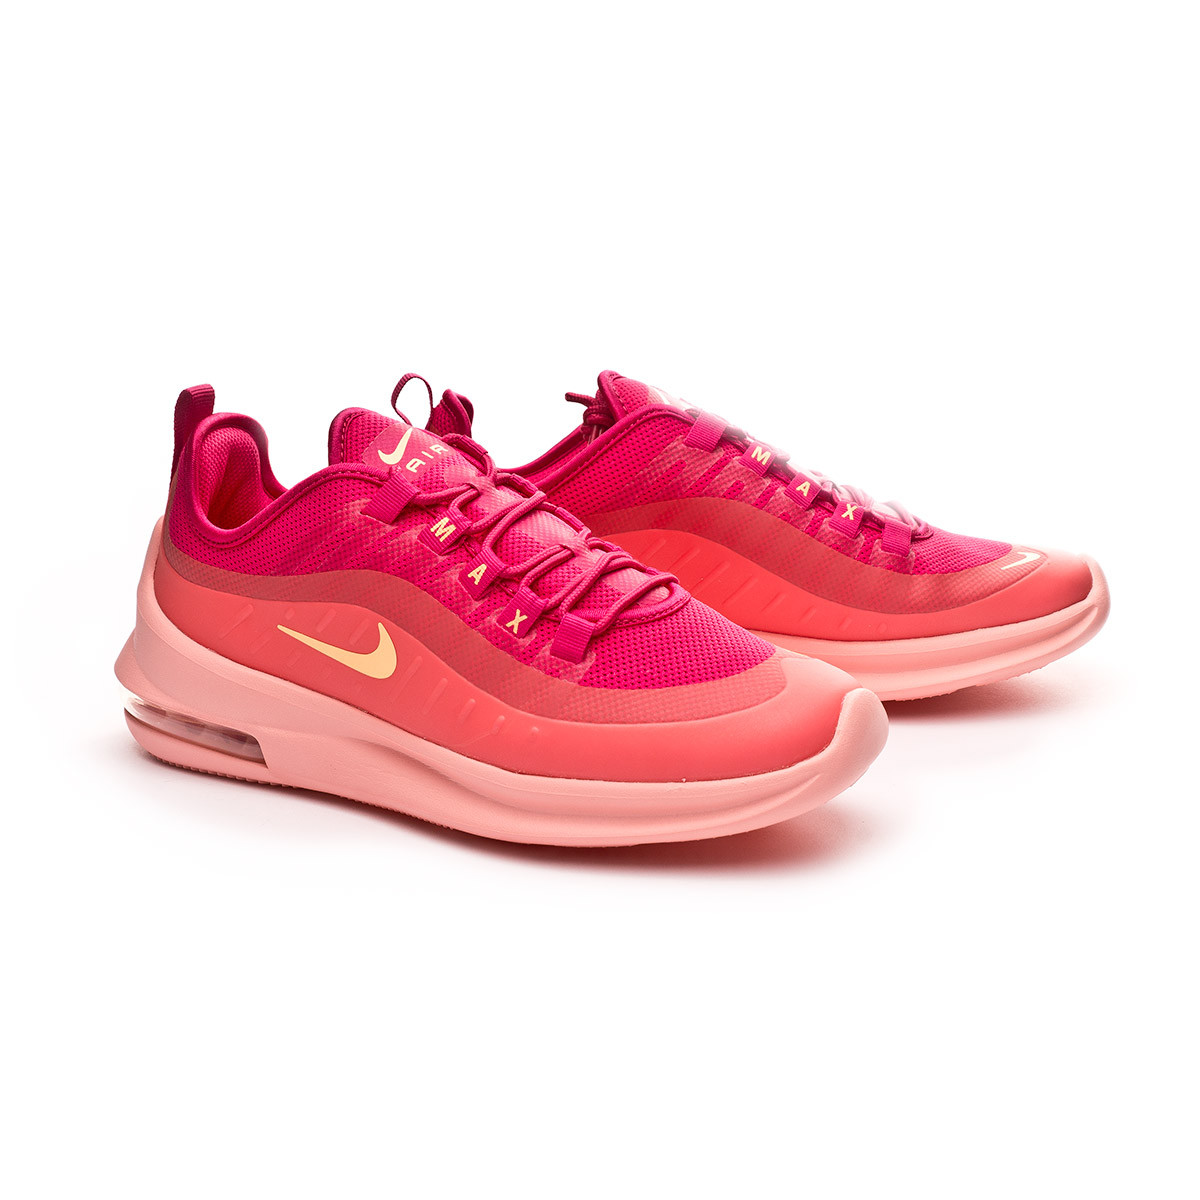 footwear best quality best loved Nike Air Max Axis Mujer Trainers